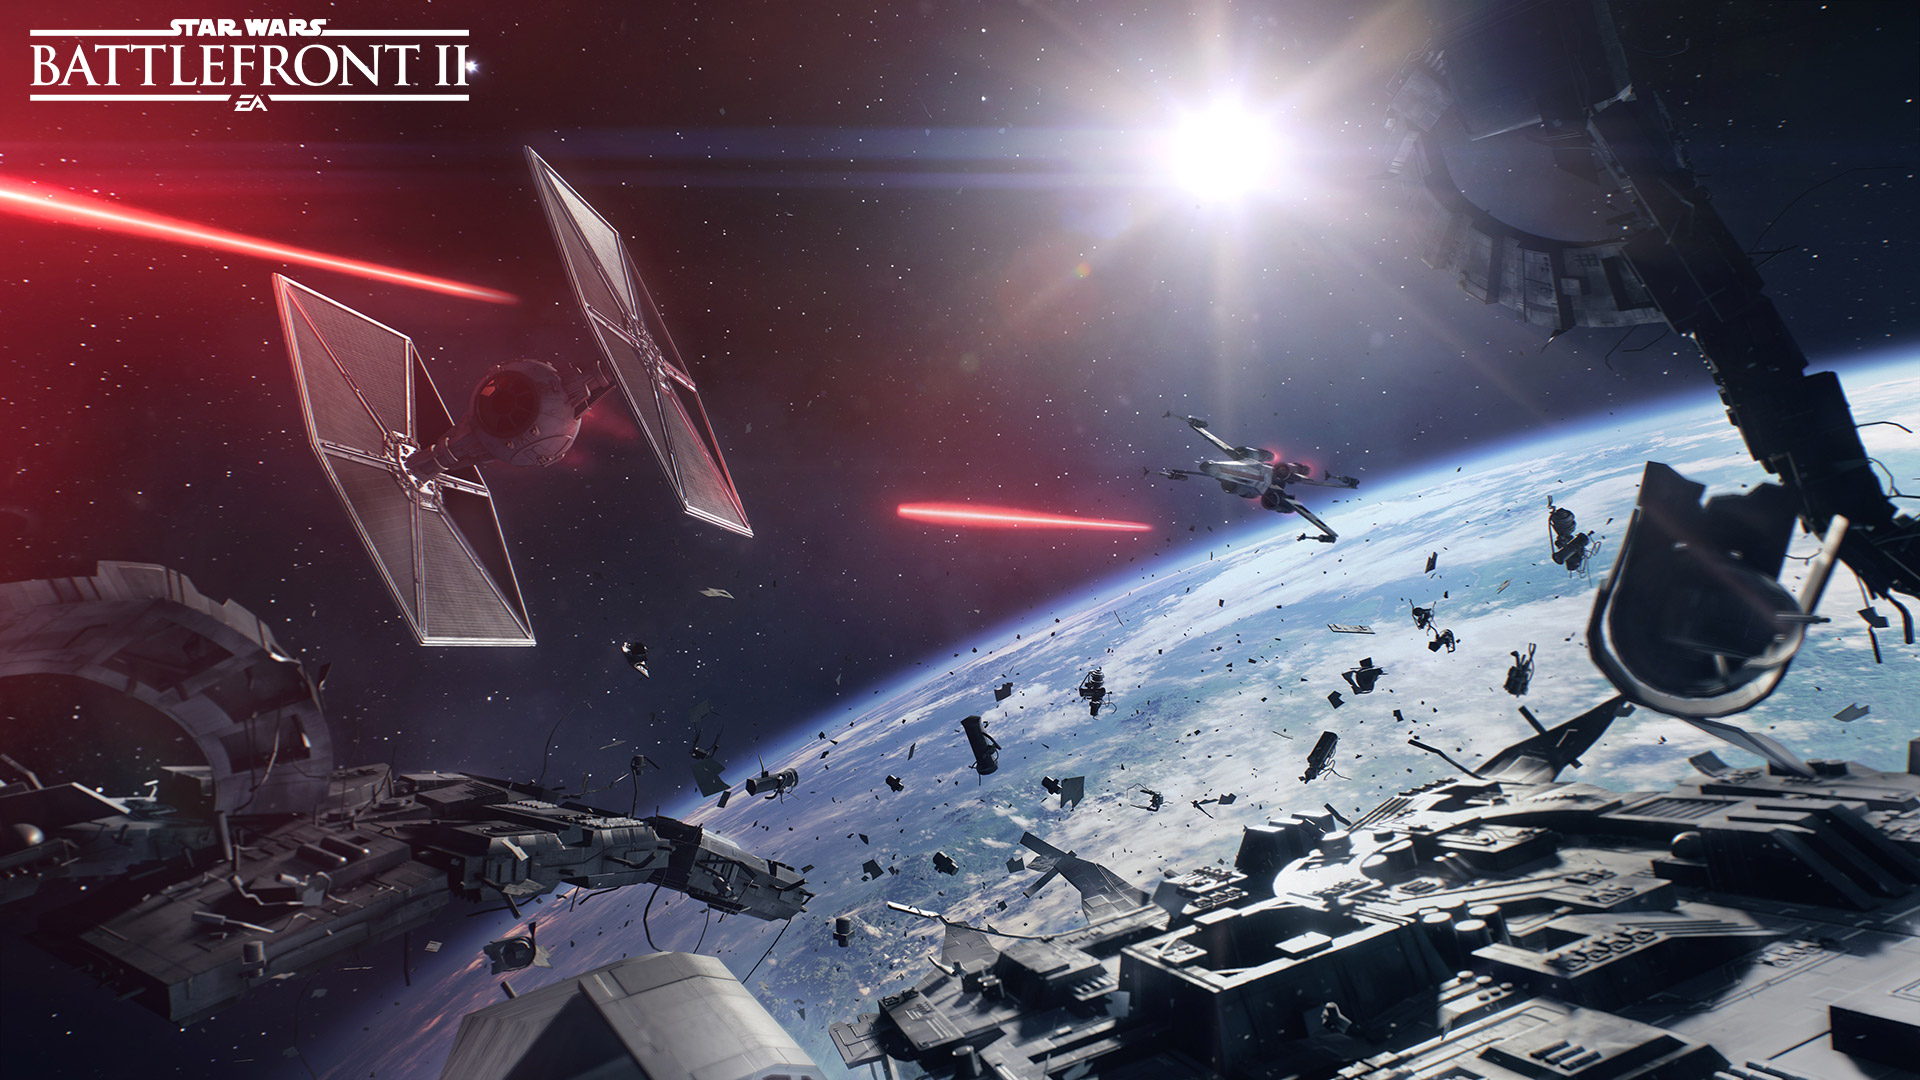 Star Wars Battlefront 2 wallpaper 14